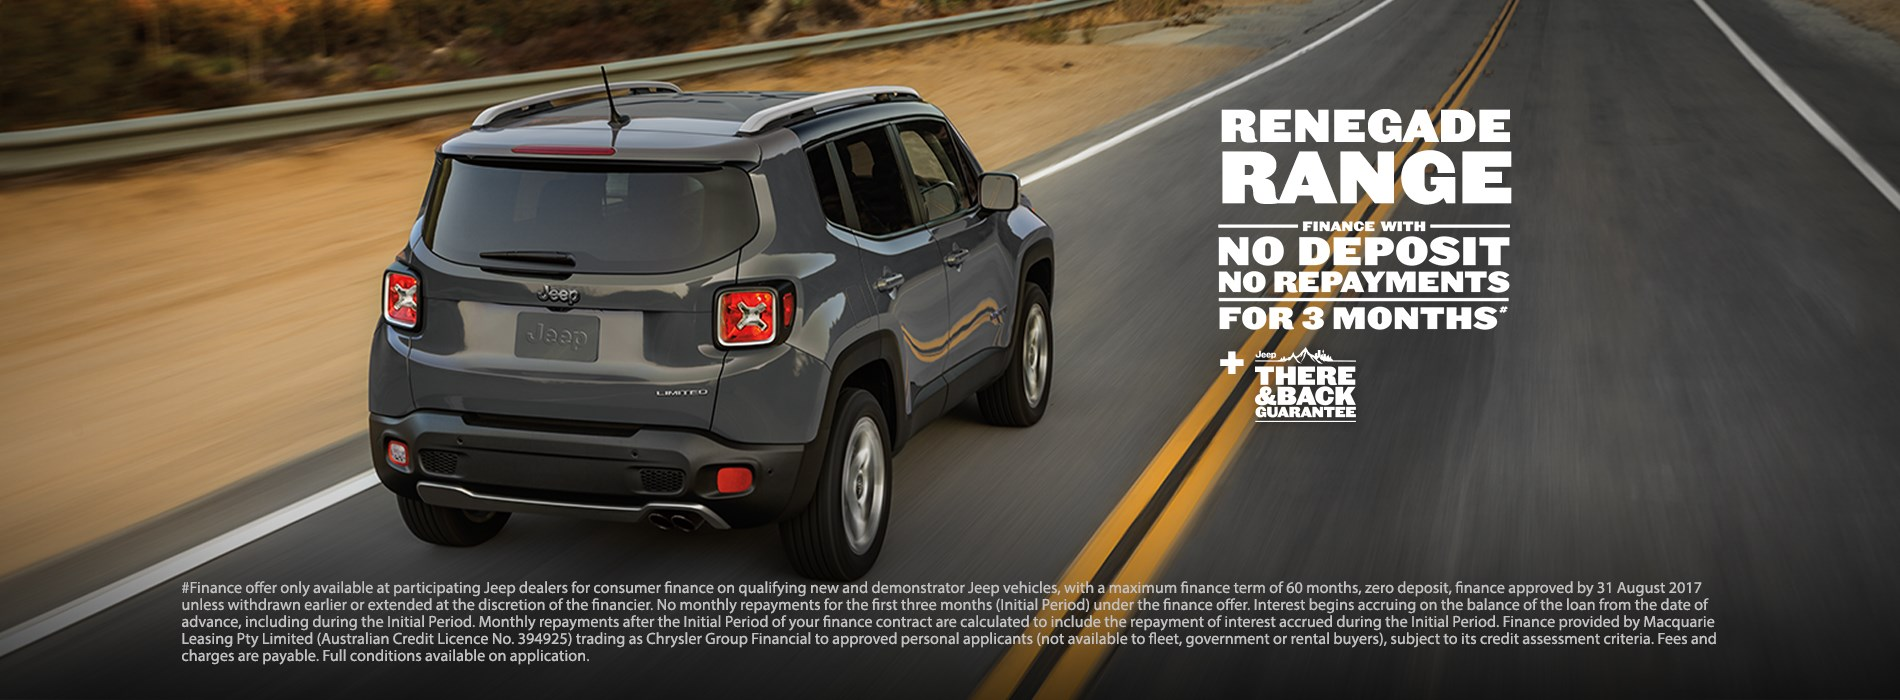 Jeep Renegade Range No payments for 3 months offer